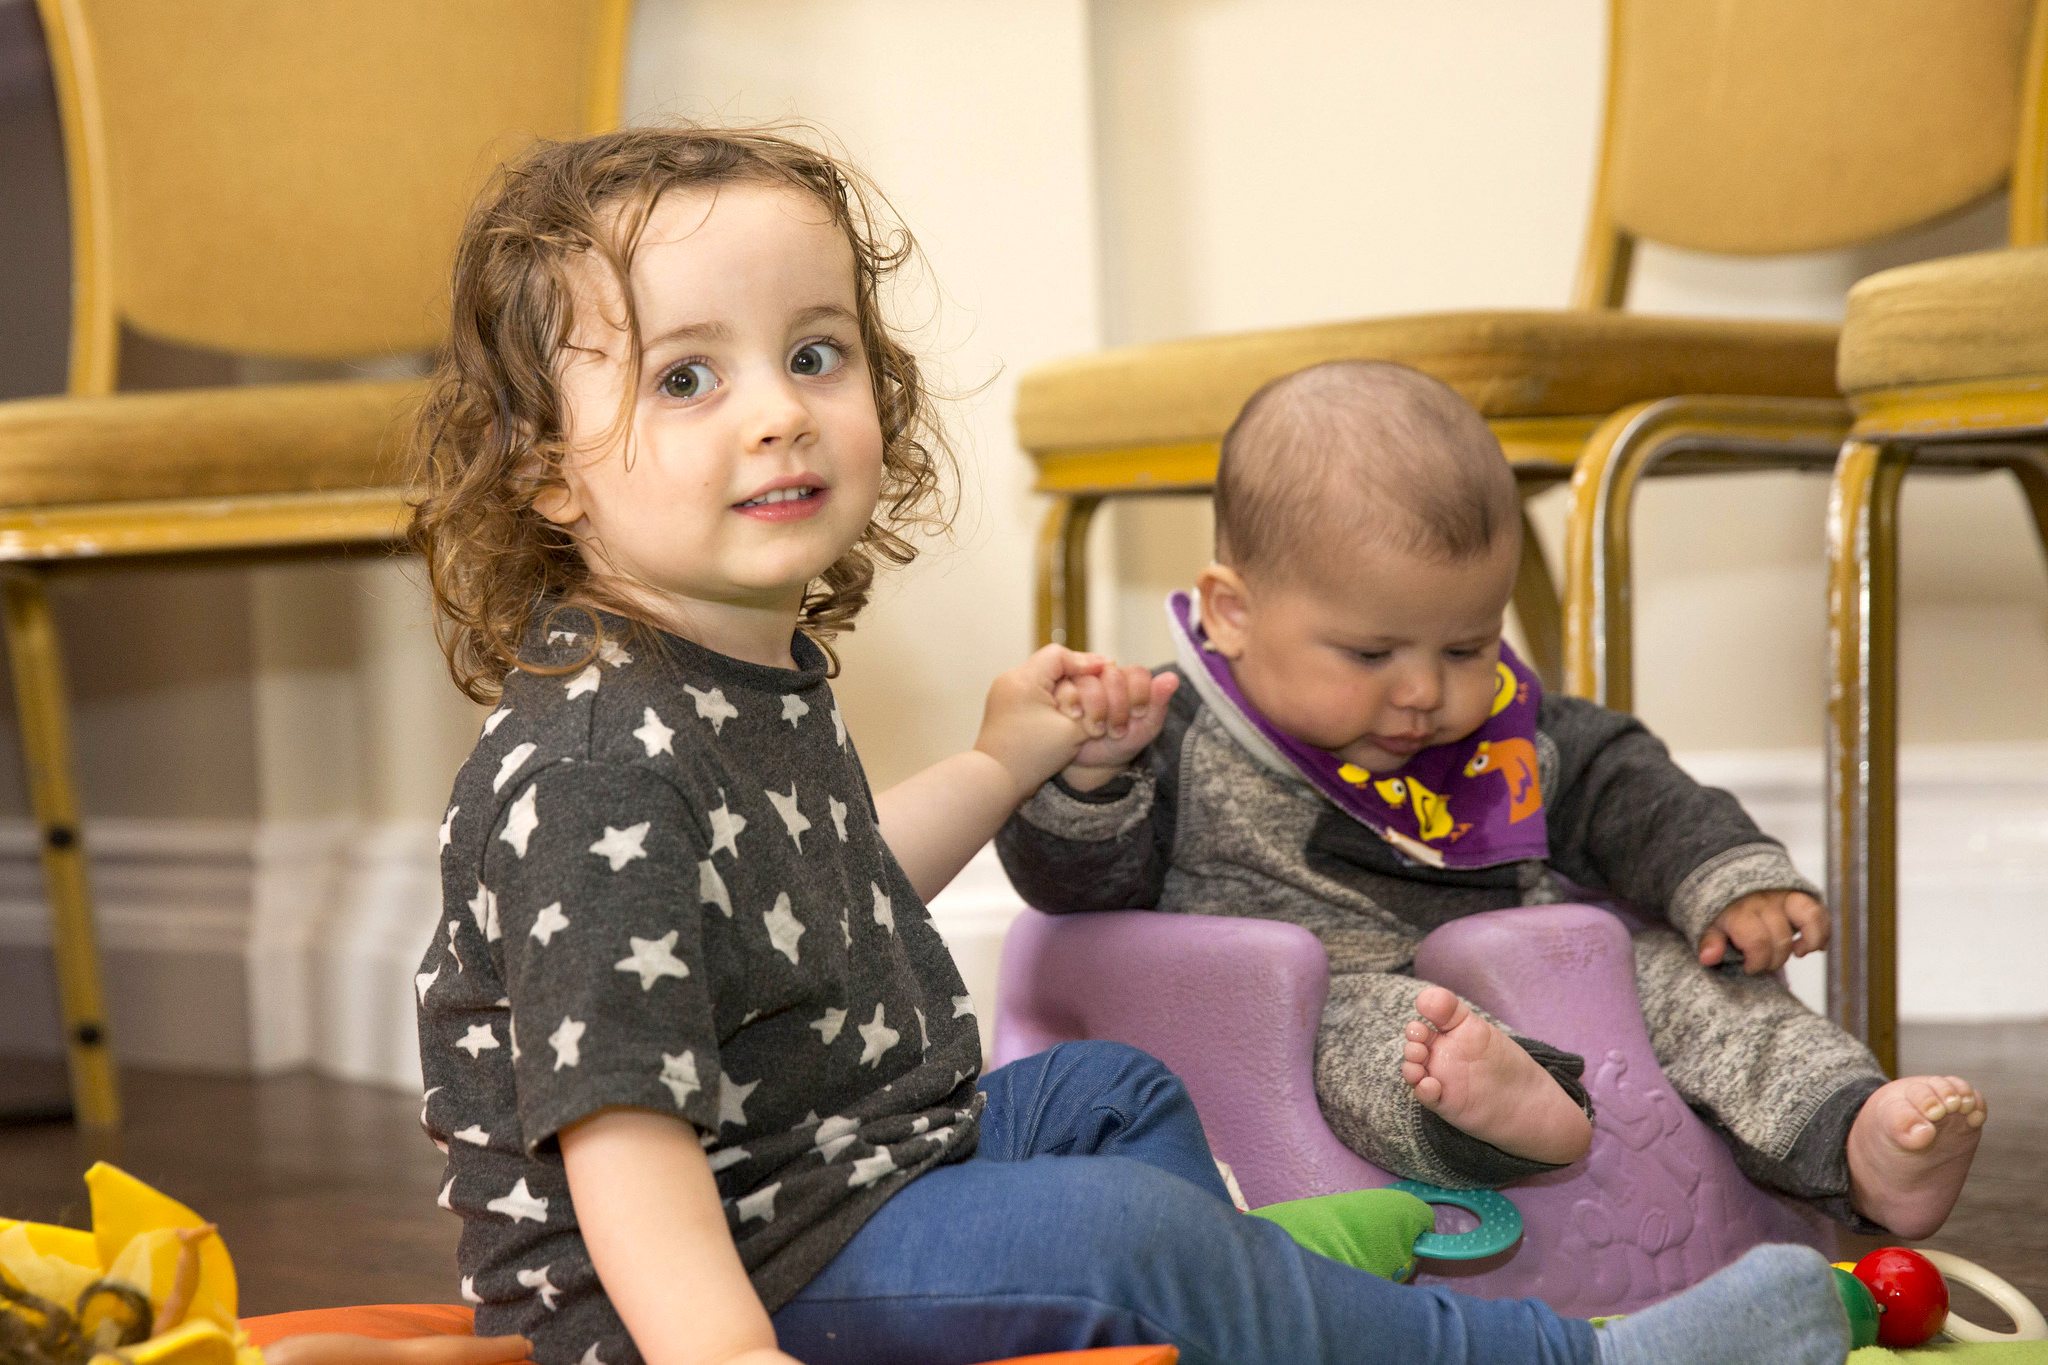 Two babies sitting on the floor with some chairs and toys.